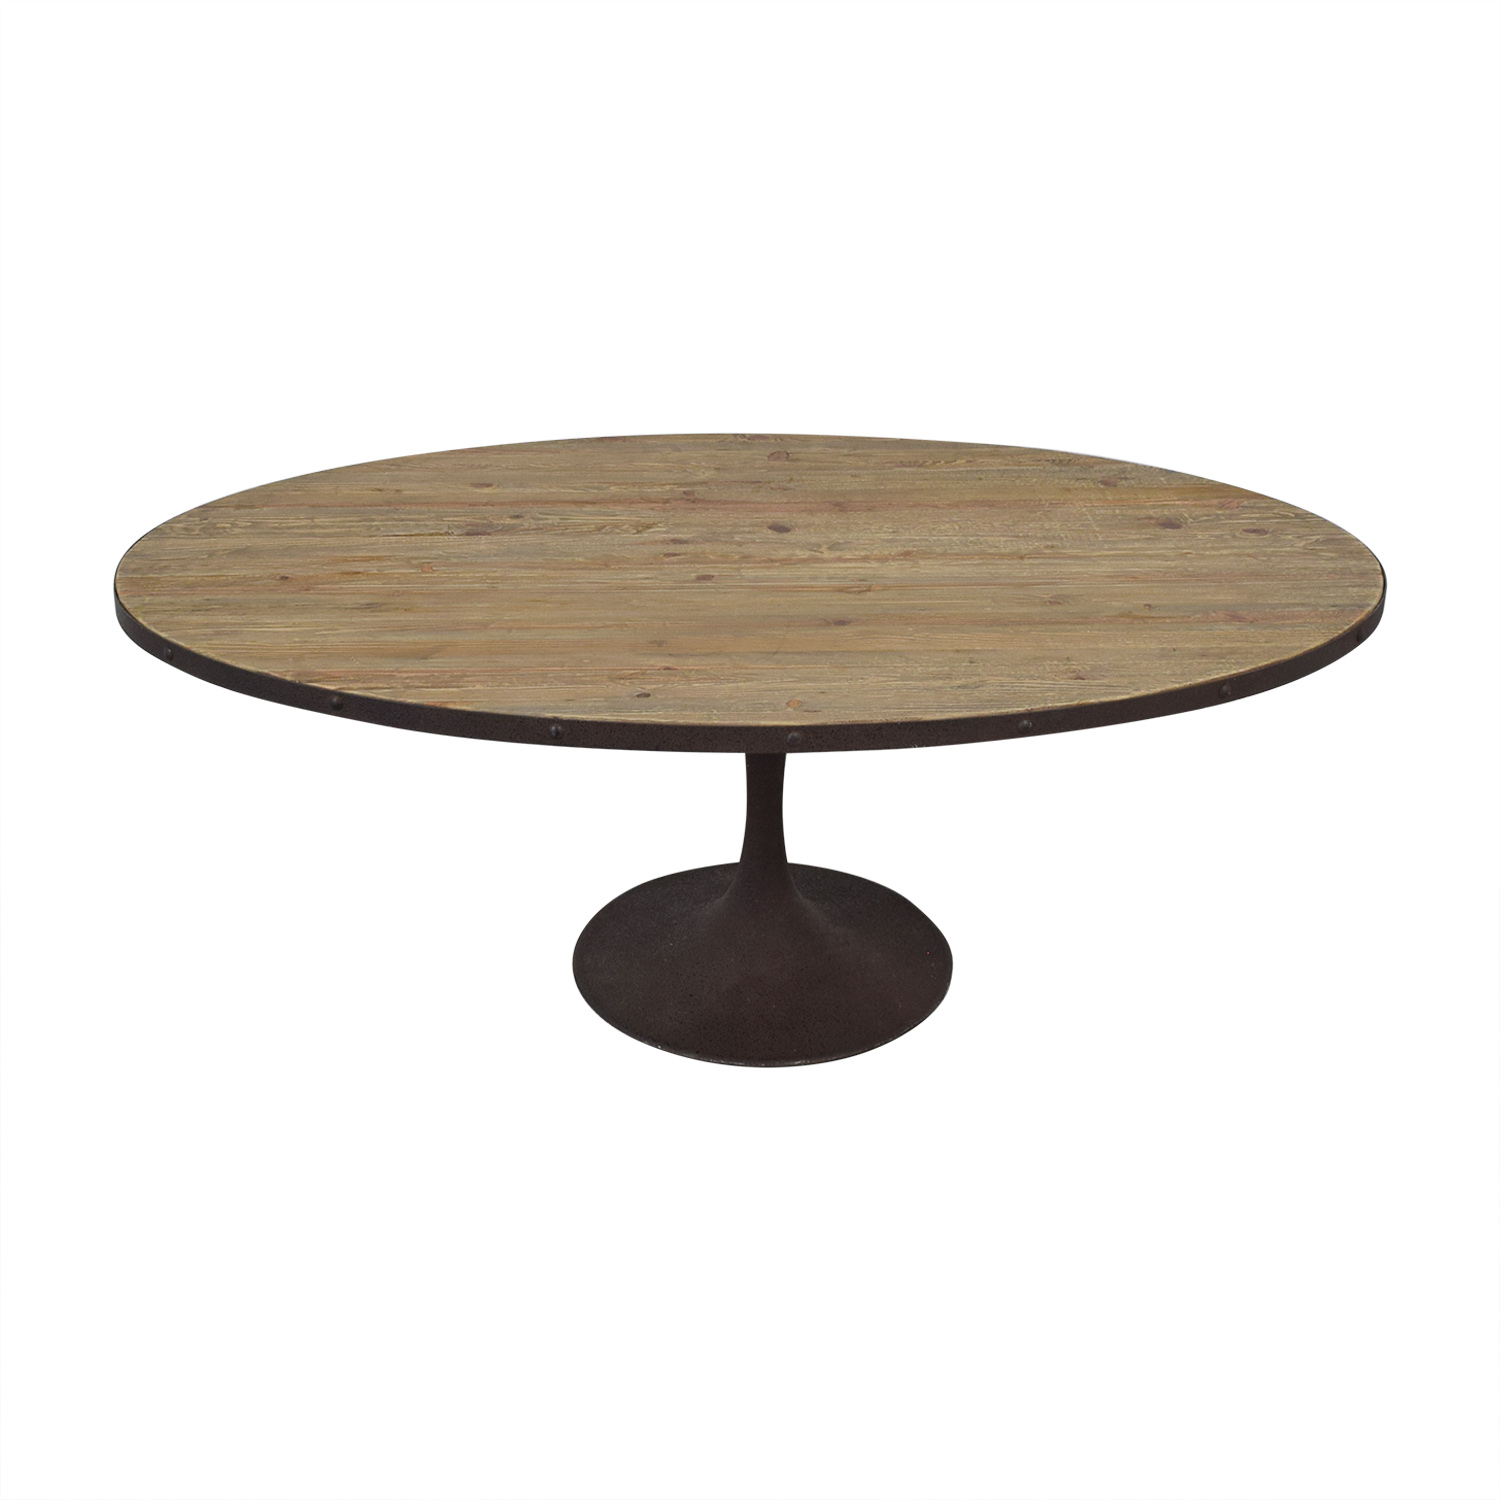 LexMod Drive Oval Dining Table / Tables